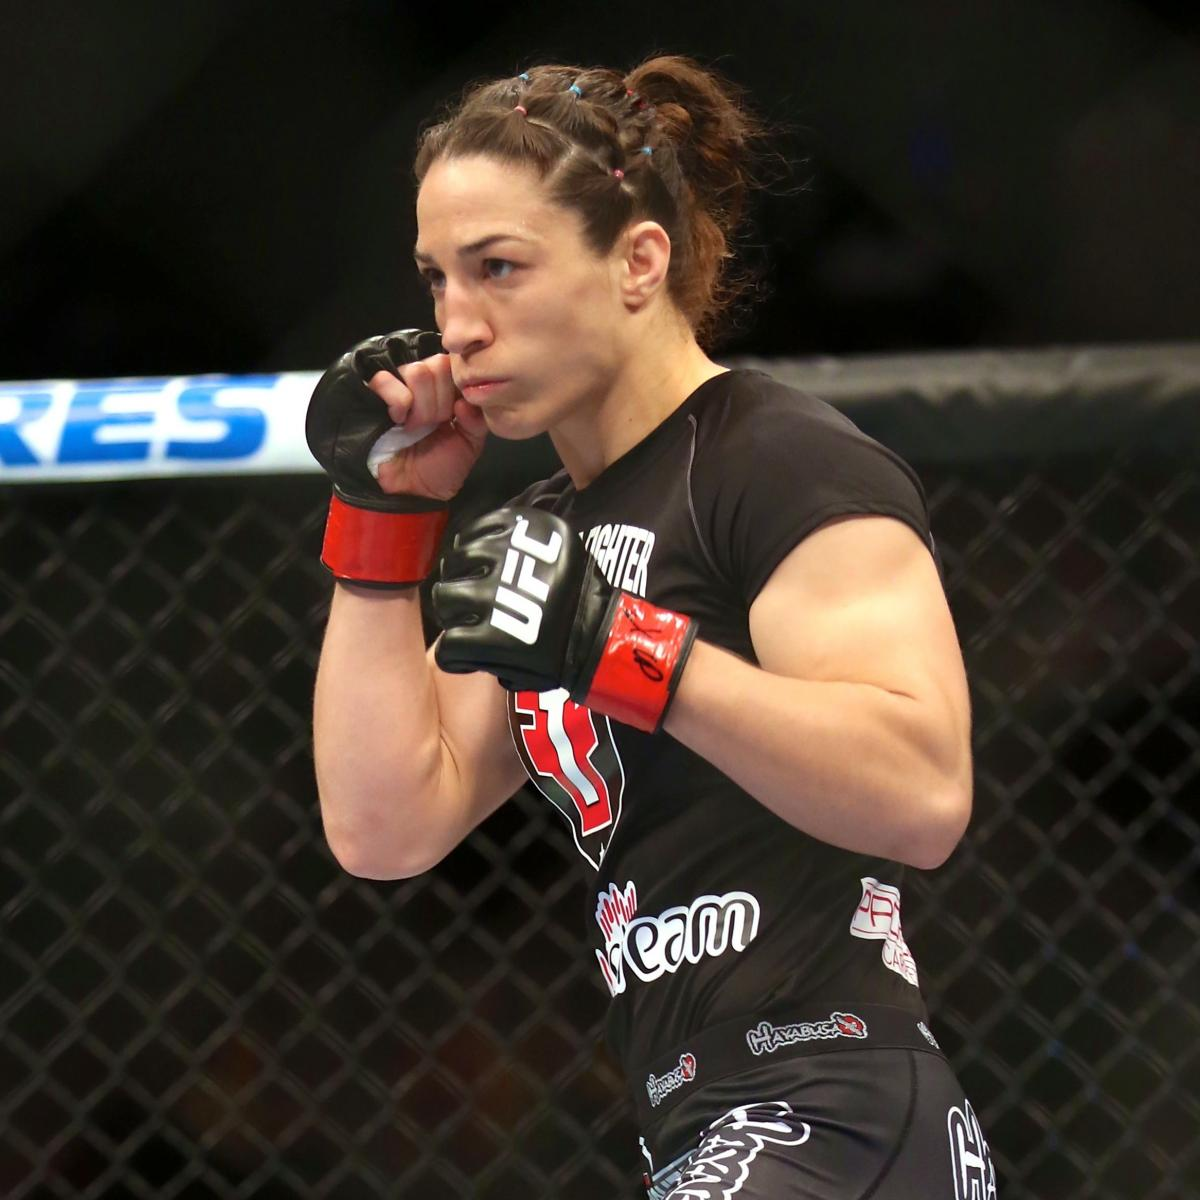 UFC 170: Rousey Vs. McMann Fight Card Betting Odds And